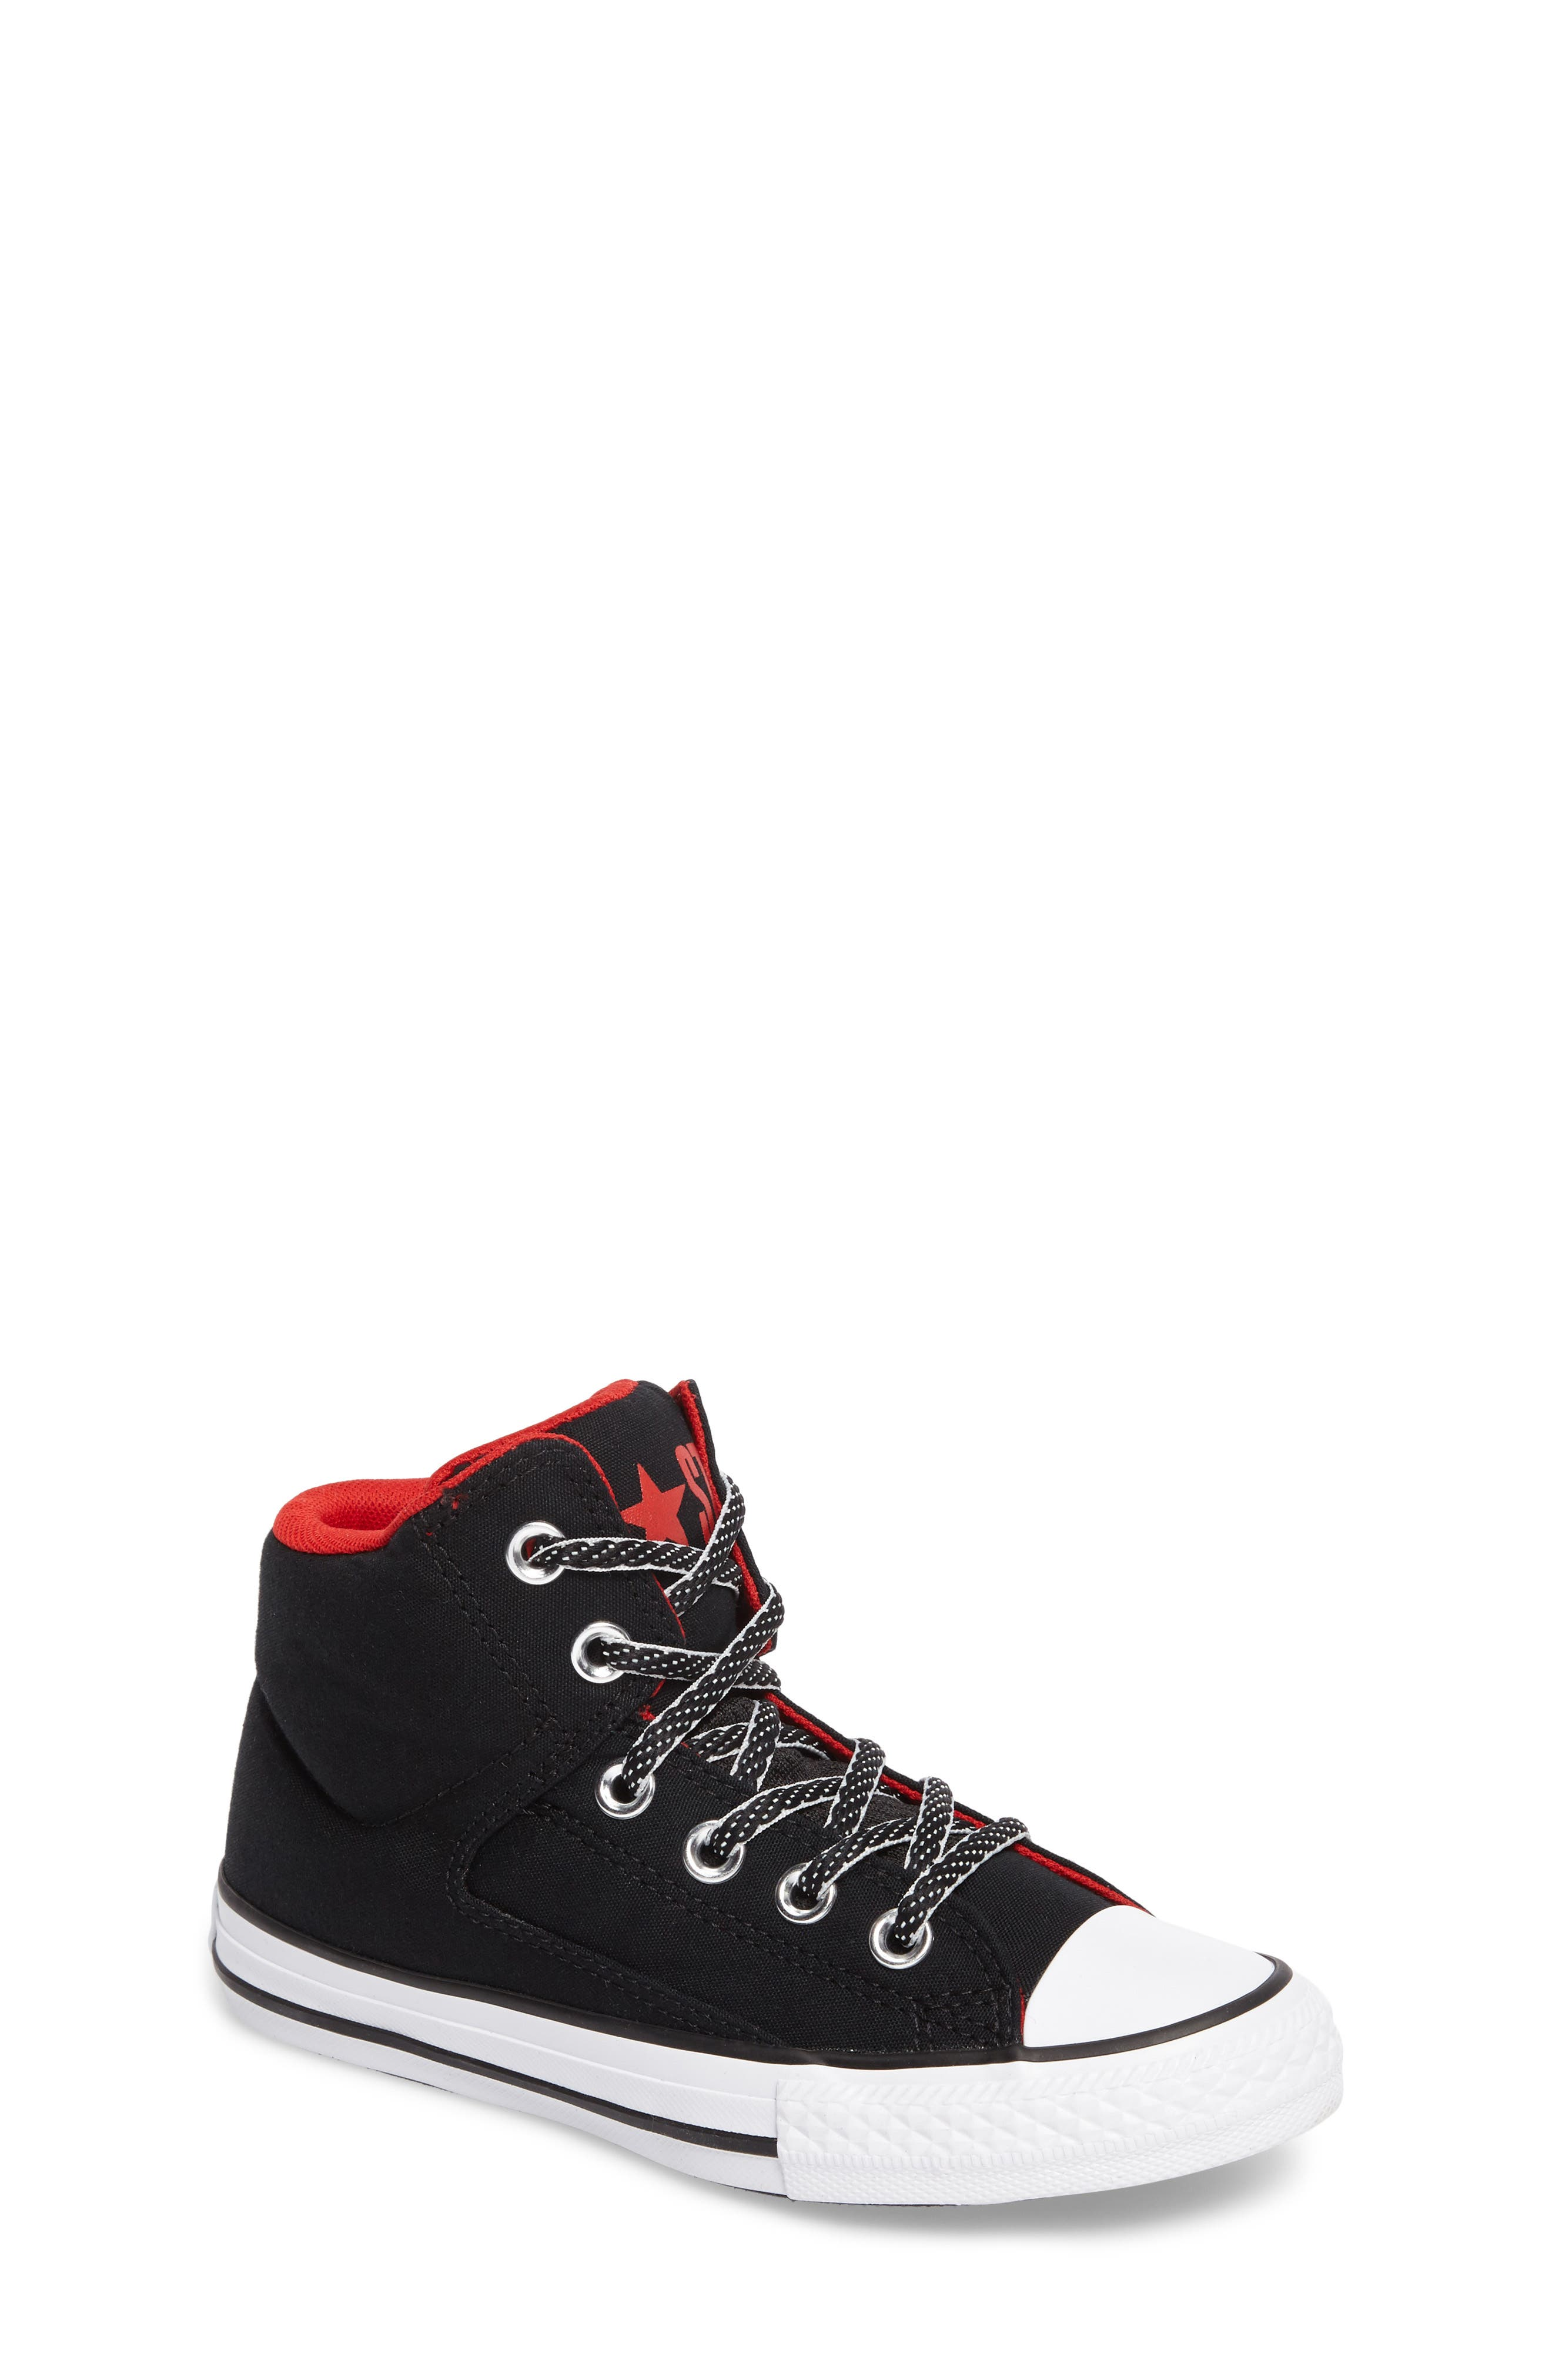 Chuck Taylor<sup>®</sup> All Star<sup>®</sup> High Street High Top Sneaker,                             Main thumbnail 1, color,                             Black Canvas